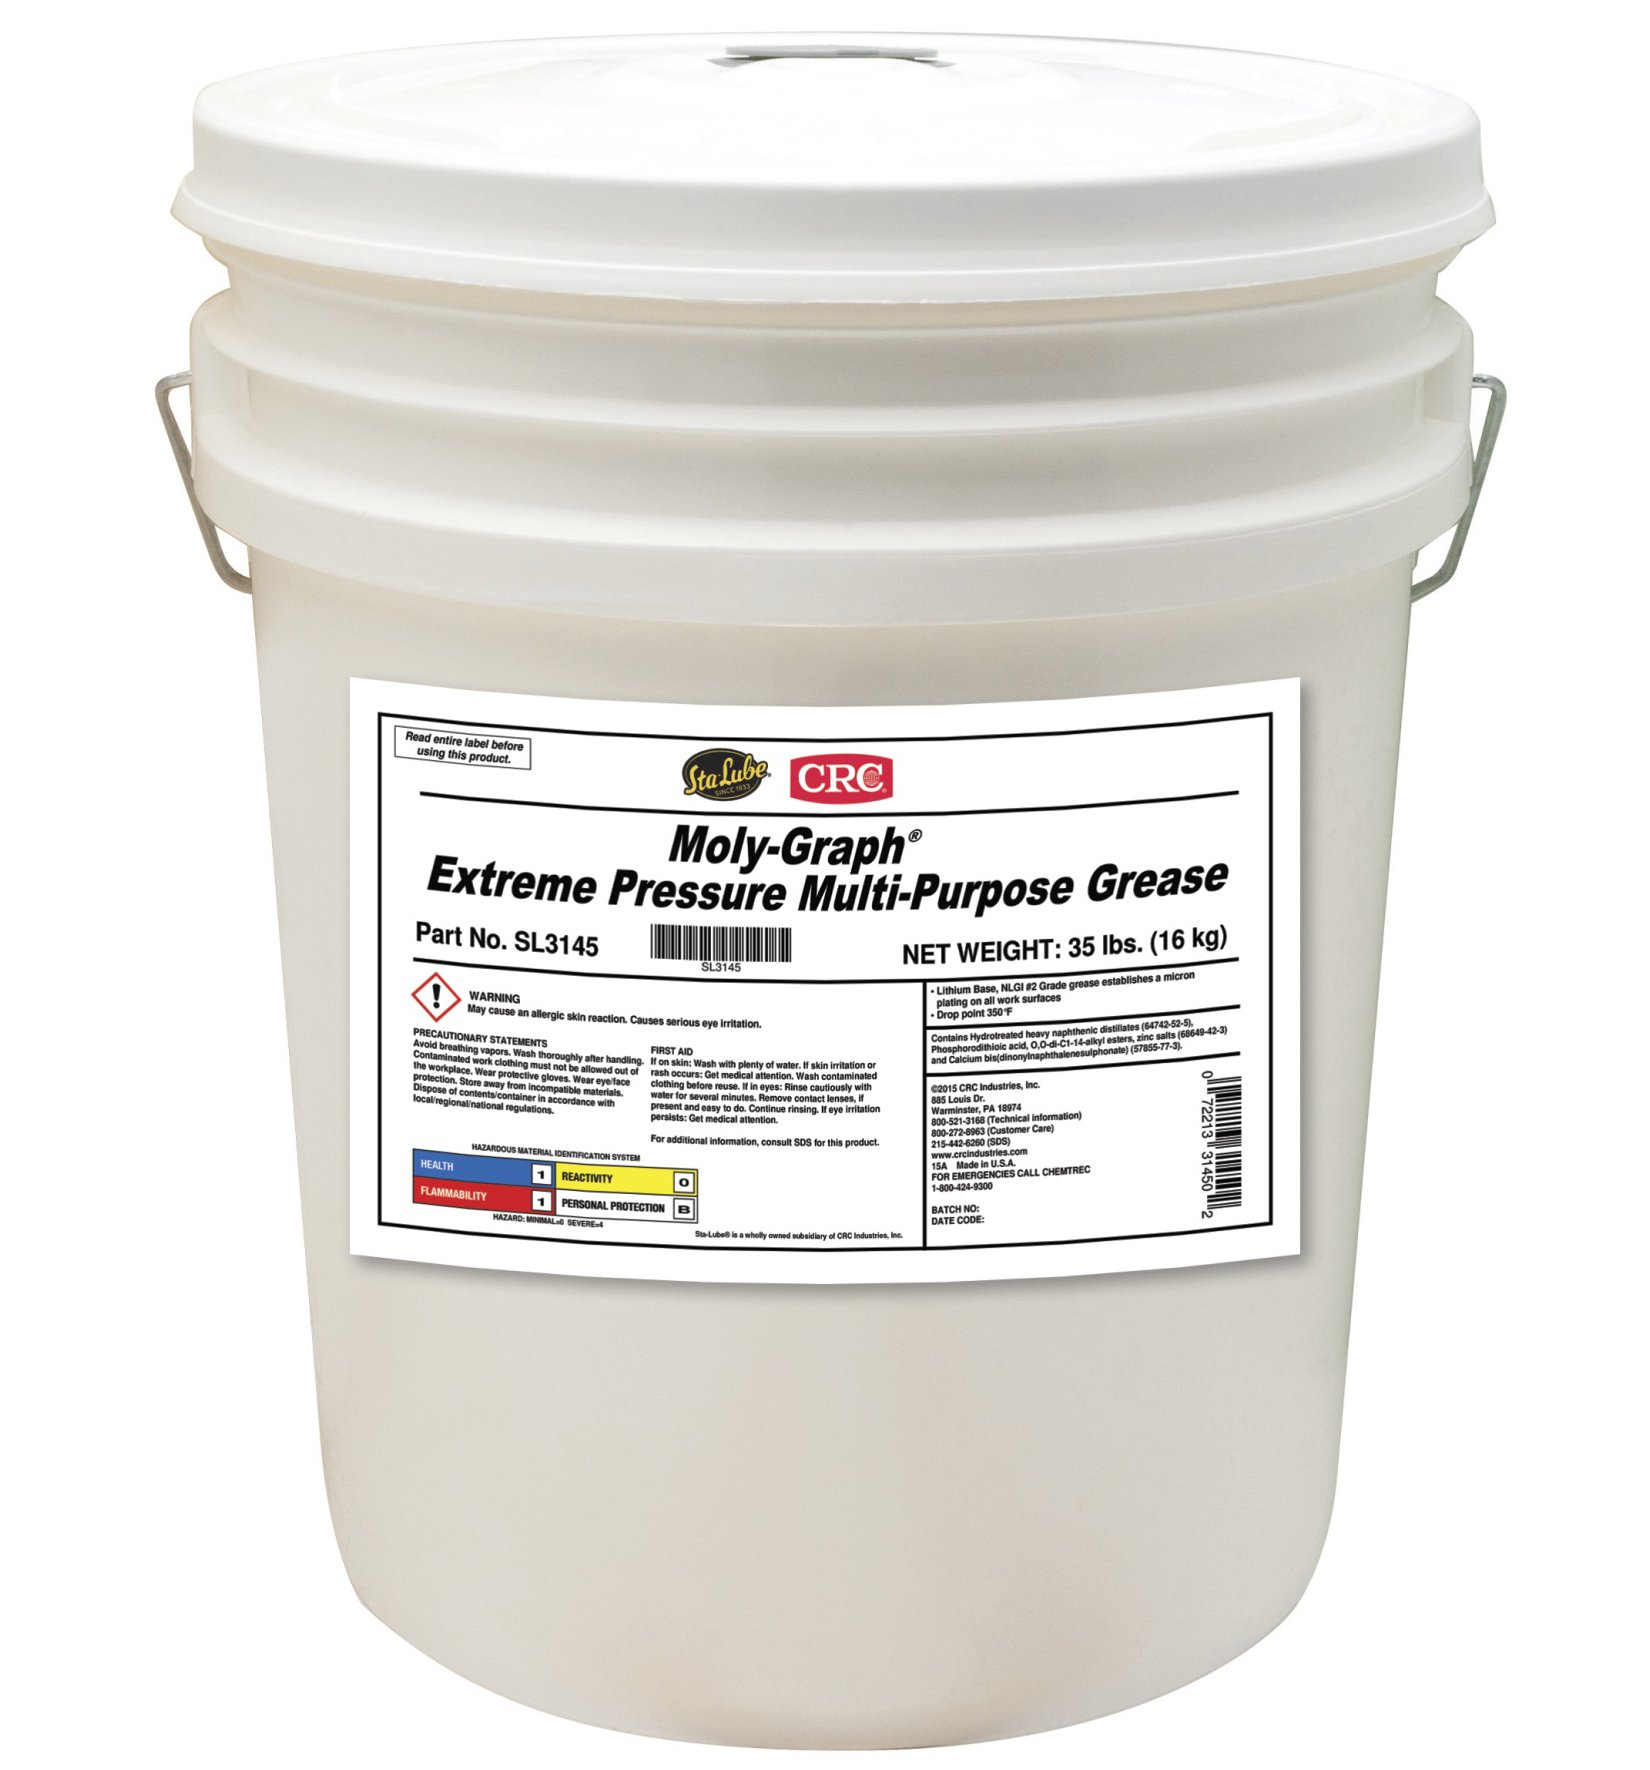 Sta-Lube SL3145 Moly-Graph Extreme Pressure Multi-Purpose Grease, 35 Lbs by Sta-Lube